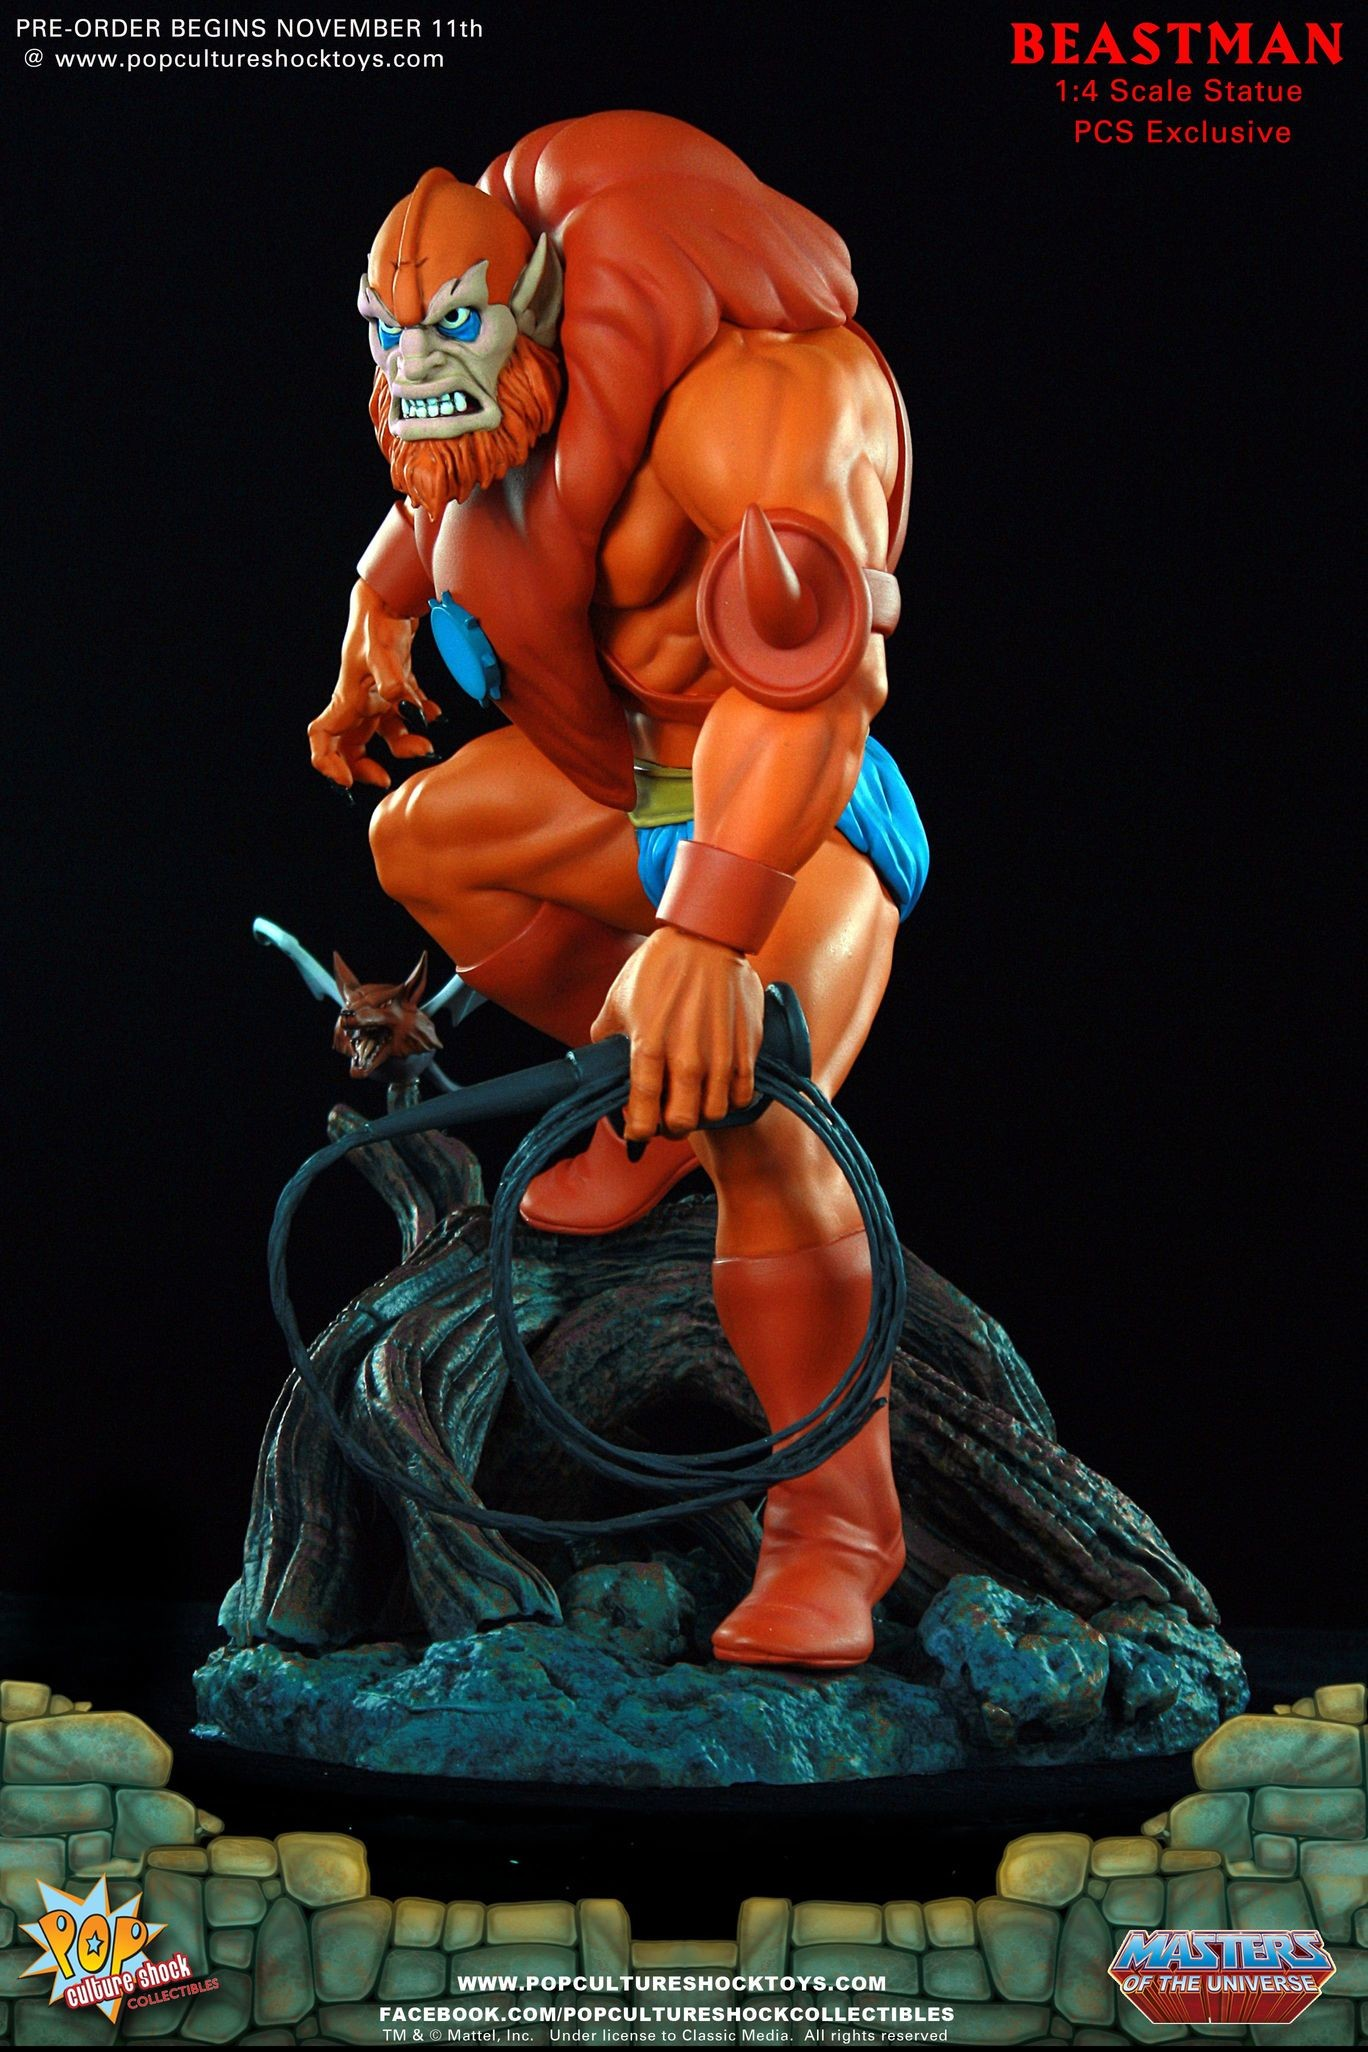 Alejandro pereira beastman exclusive edition motu pop culture shock 04